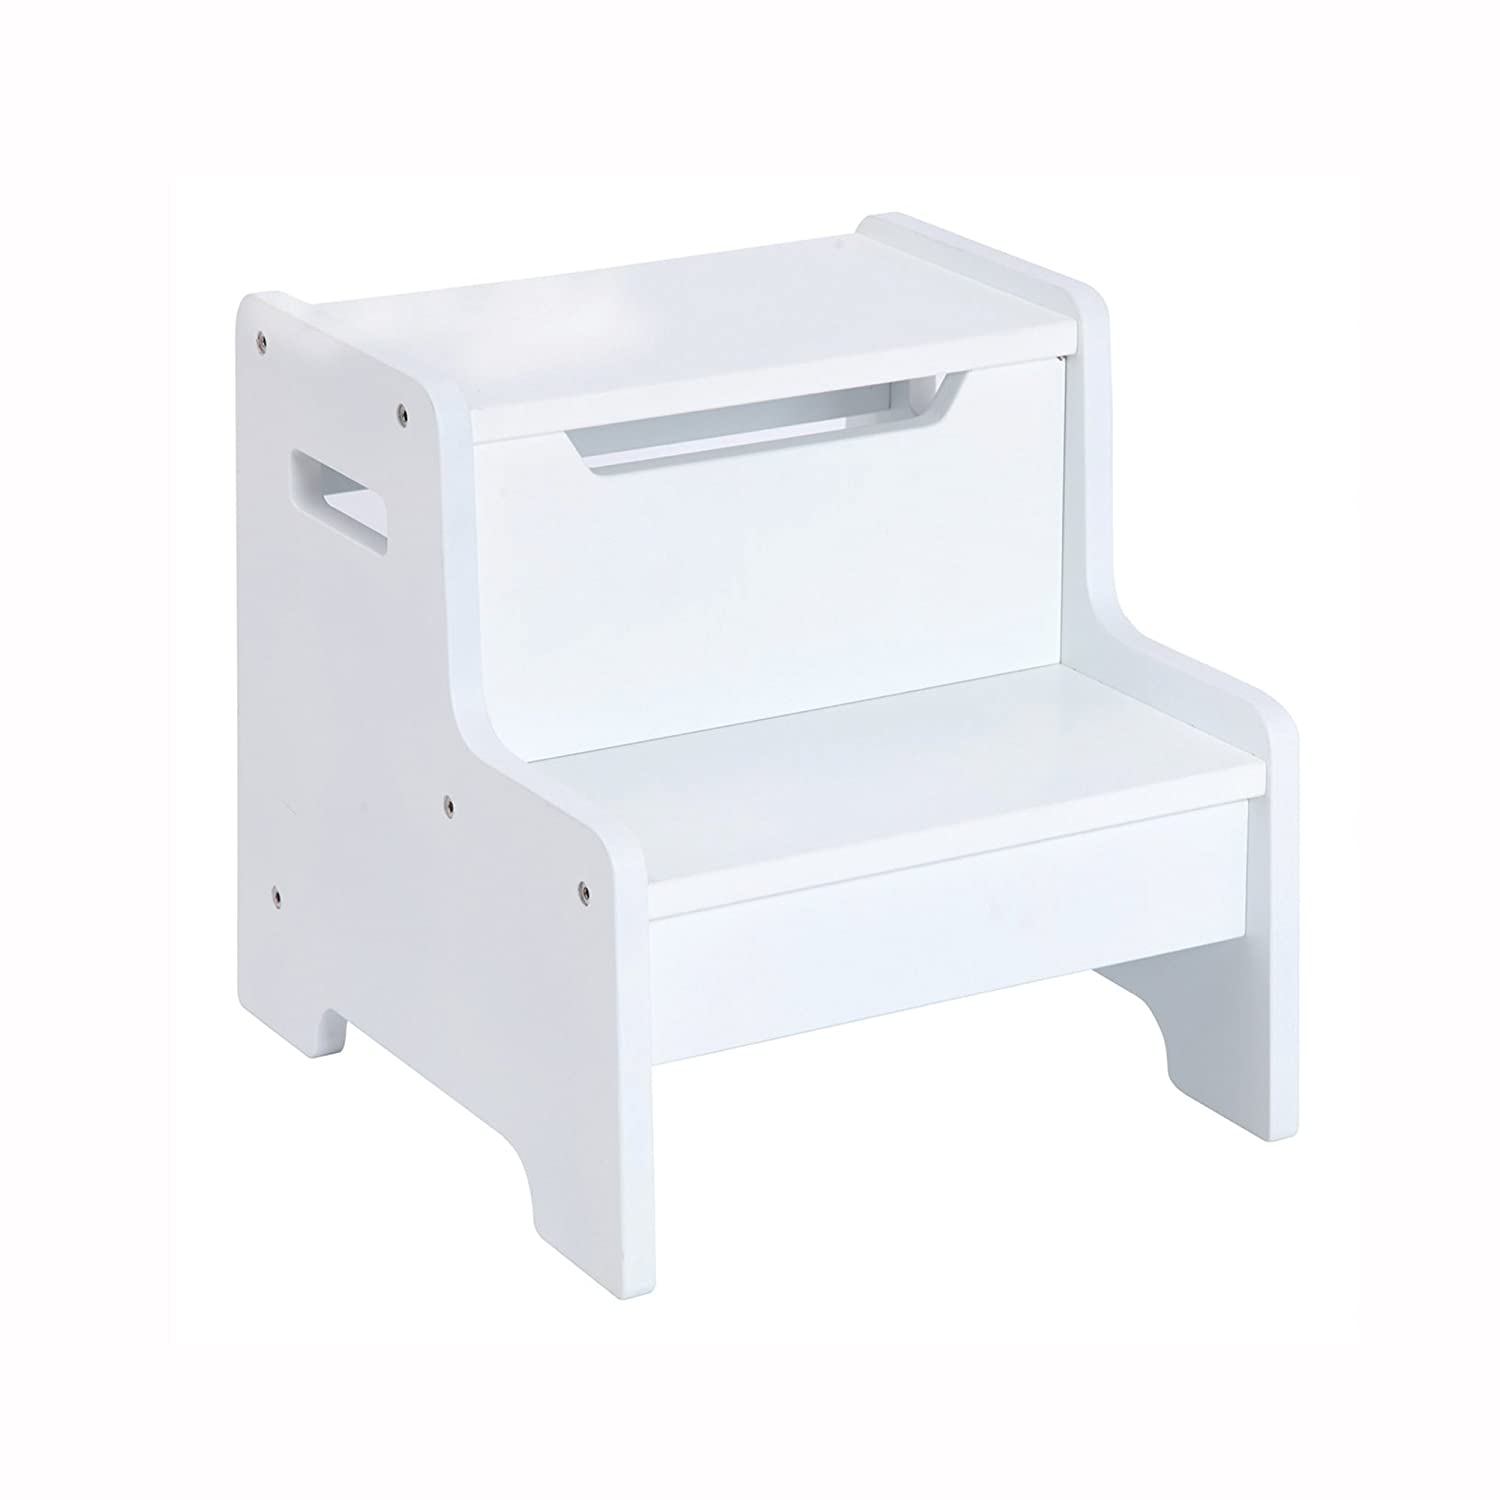 Amazon.com Guidecraft Expressions Step Stool - Step Up Kidu0027s Furniture White Baby  sc 1 st  Amazon.com & Amazon.com: Guidecraft Expressions Step Stool - Step Up Kidu0027s ... islam-shia.org